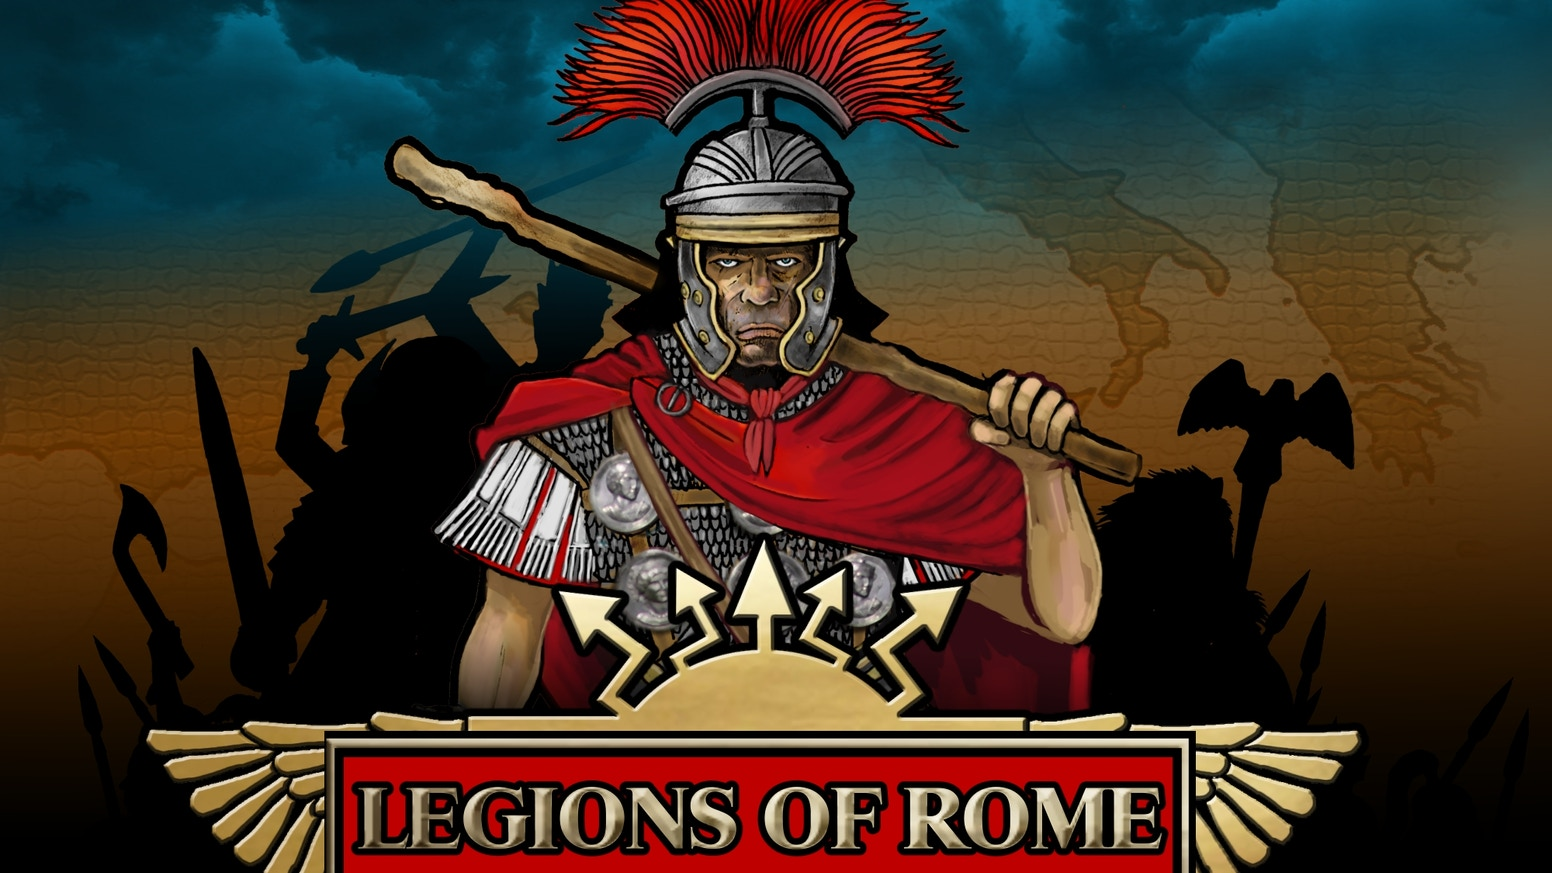 """Raise the Eagles and prepare for war!    Join us for """"Legions of Rome"""" Phase II of War & Empire - 15mm Ancients game and miniatures!"""